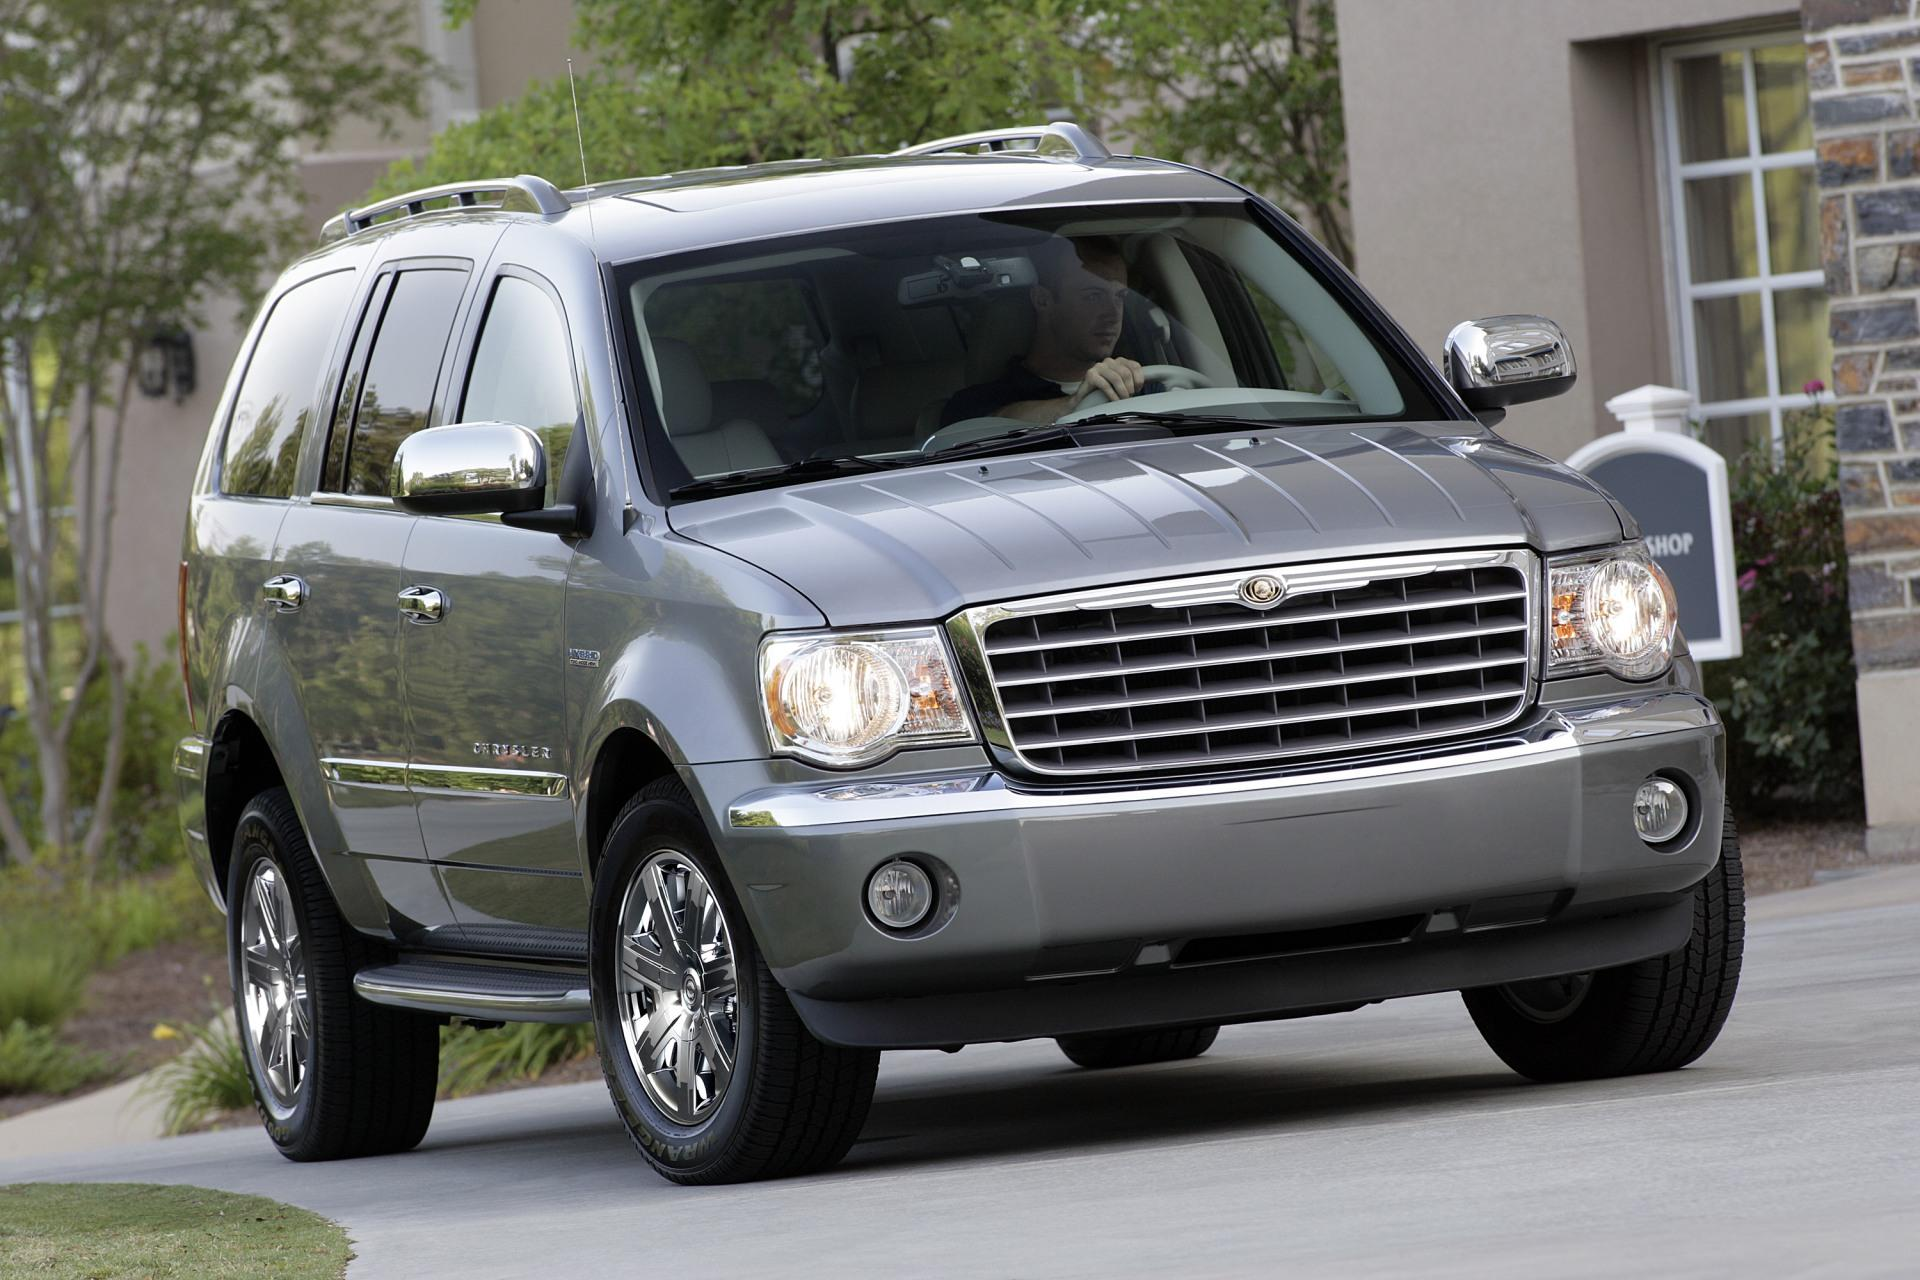 2009 Chrysler Aspen Hybrid News And Information